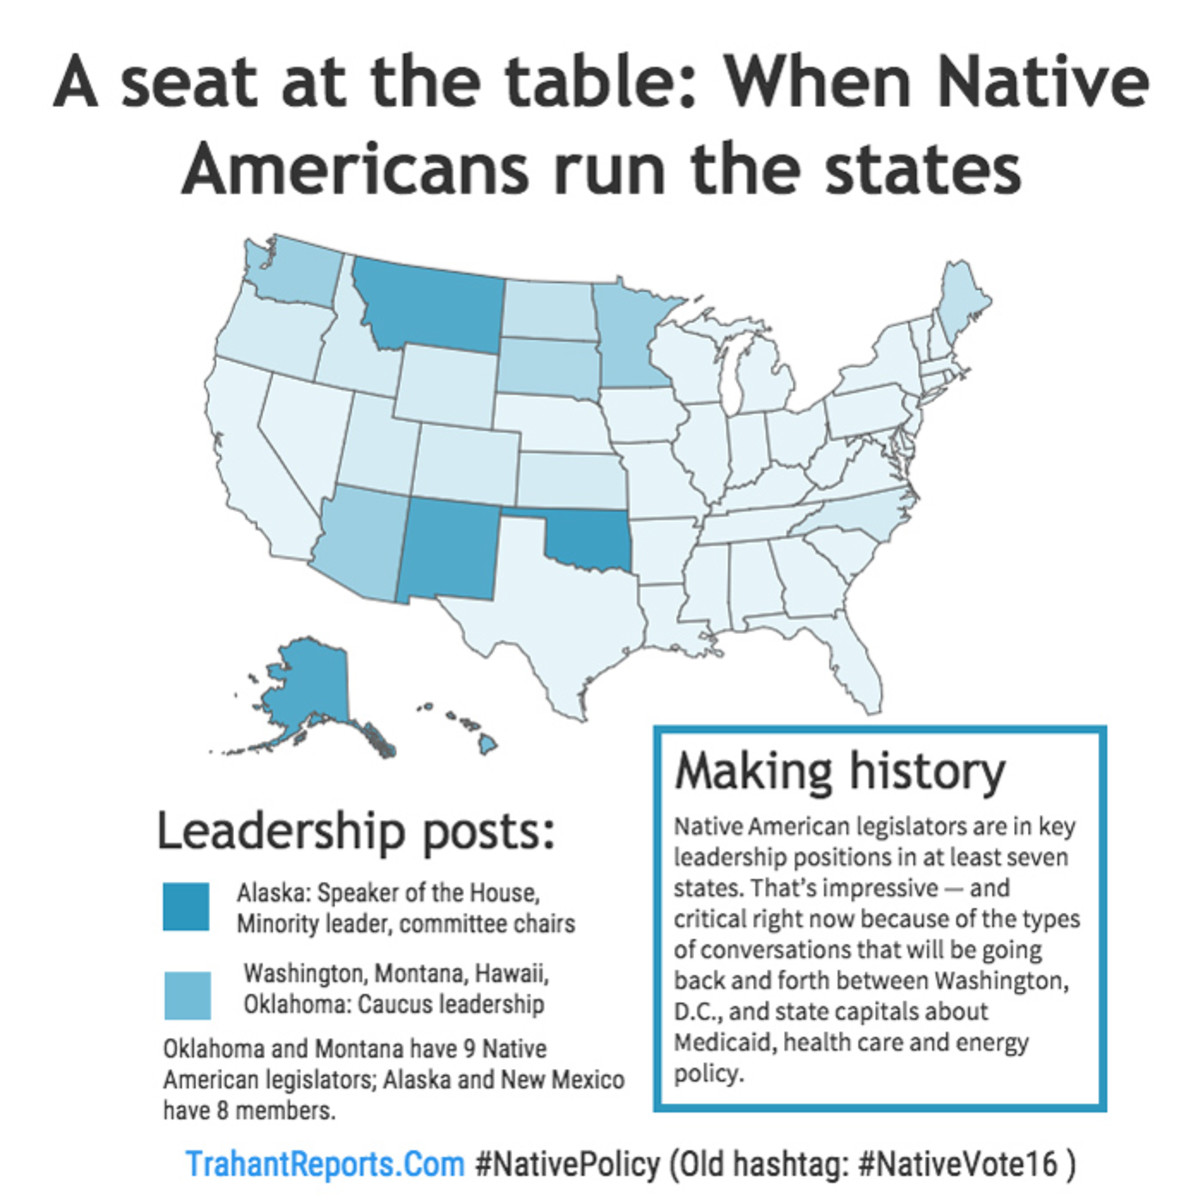 A seat at the table – when Native Americans run the states